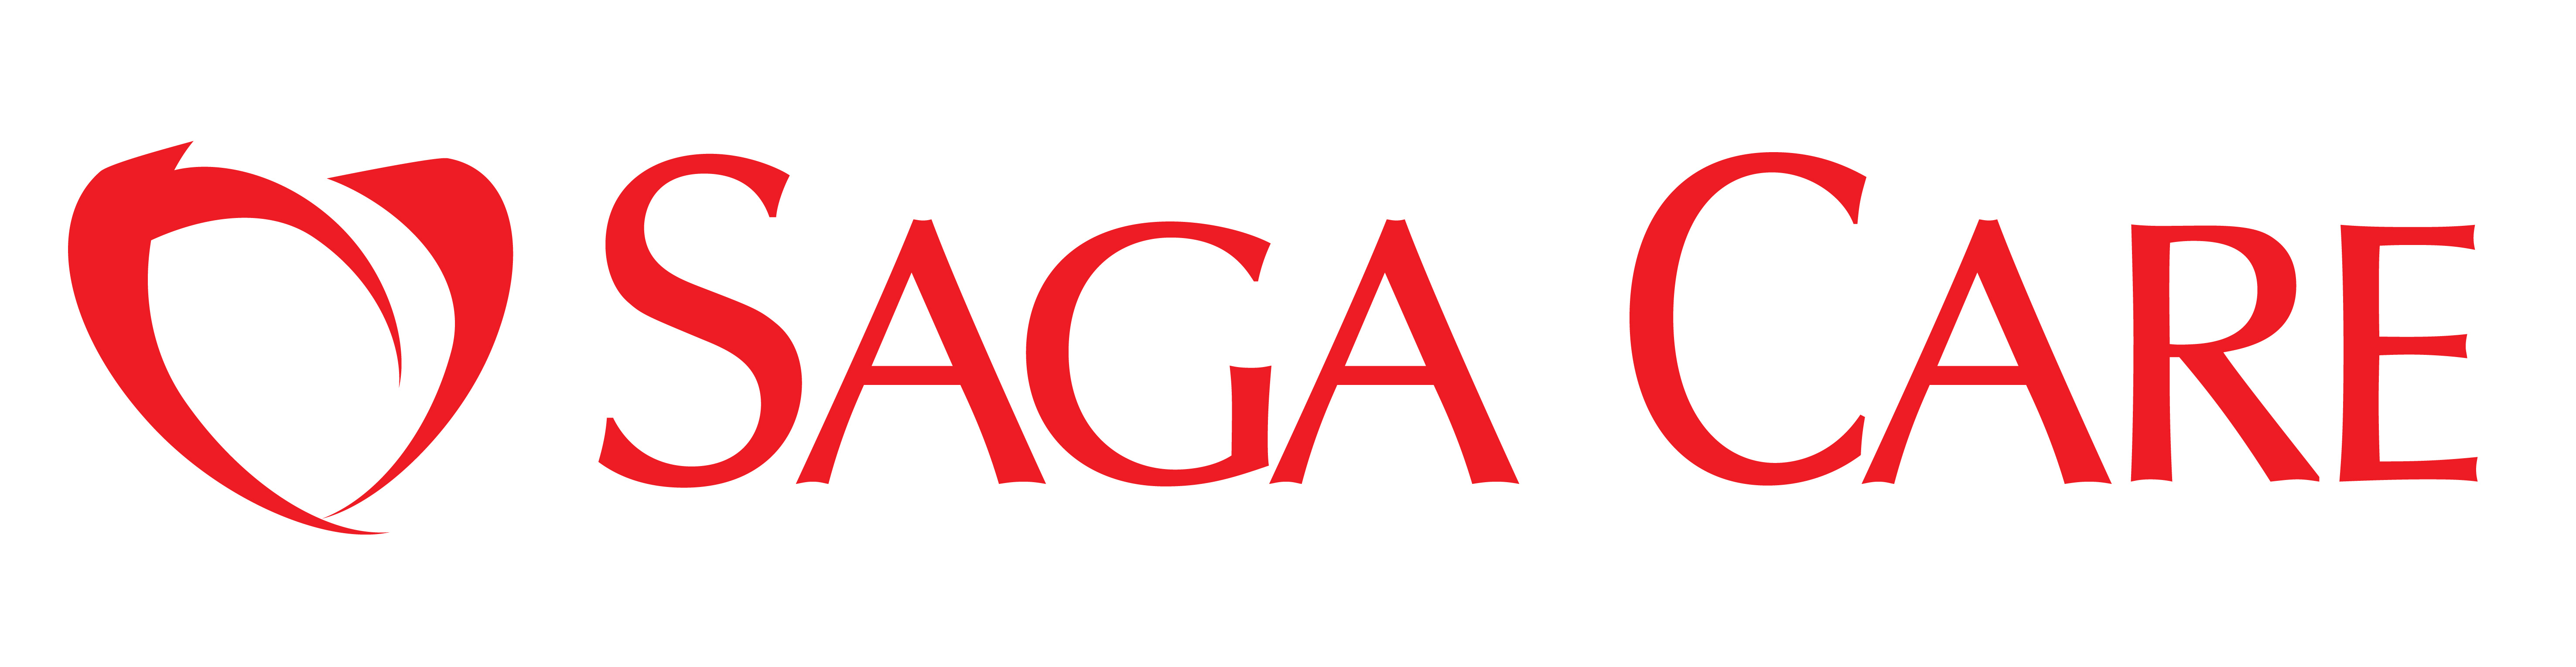 Saga Care Oy logo